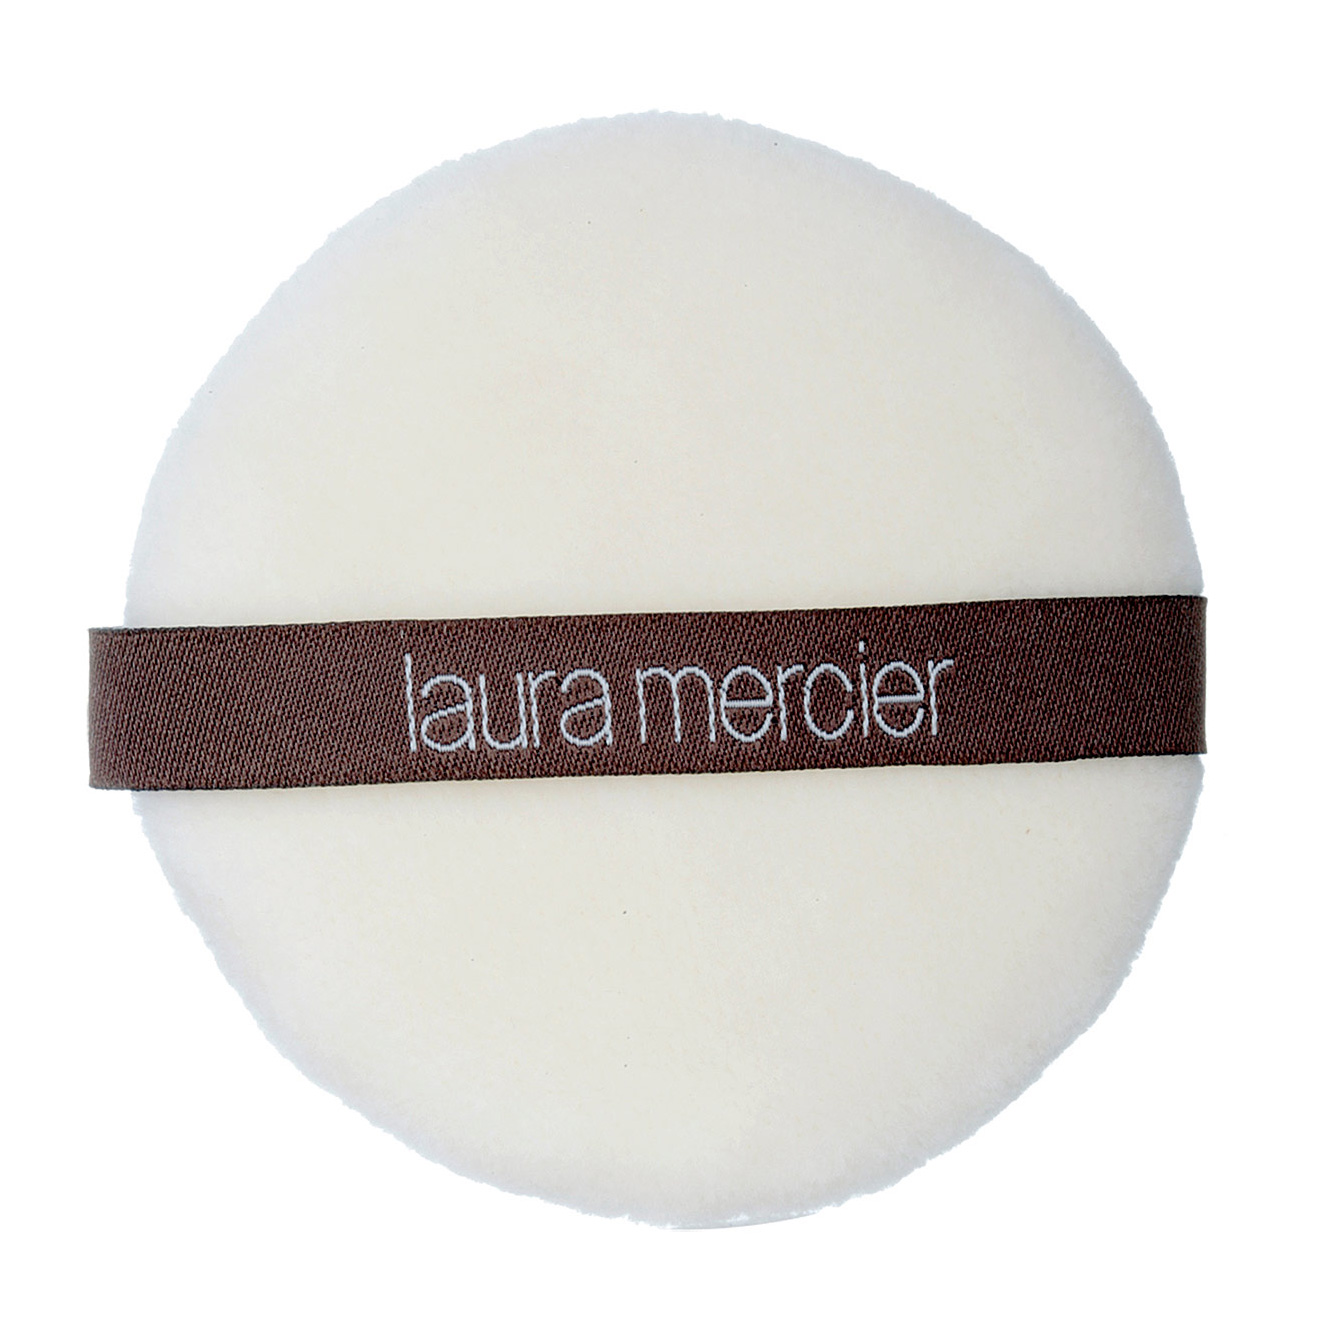 Laura Mercier Velour Powder Puff